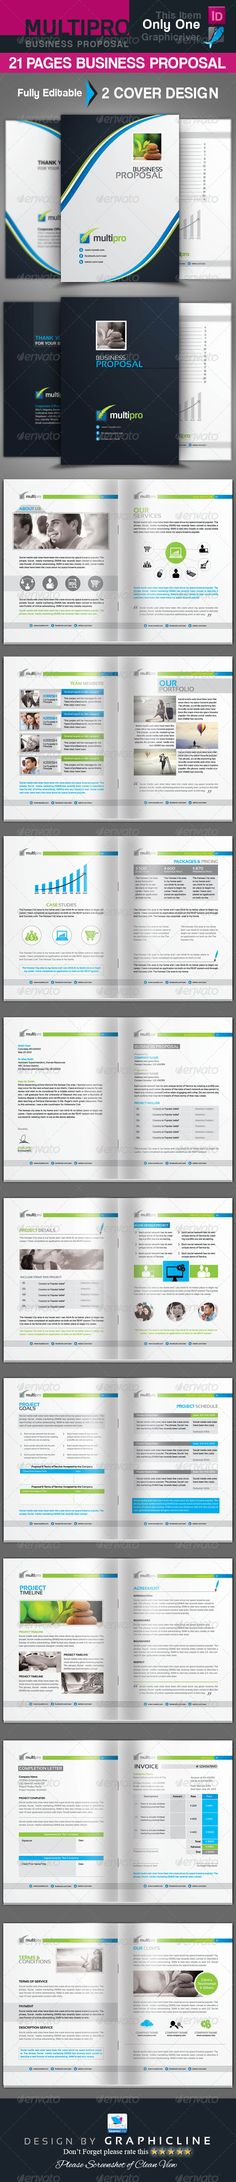 Proposals, Business proposal template and Business on Pinterest - business proposal download